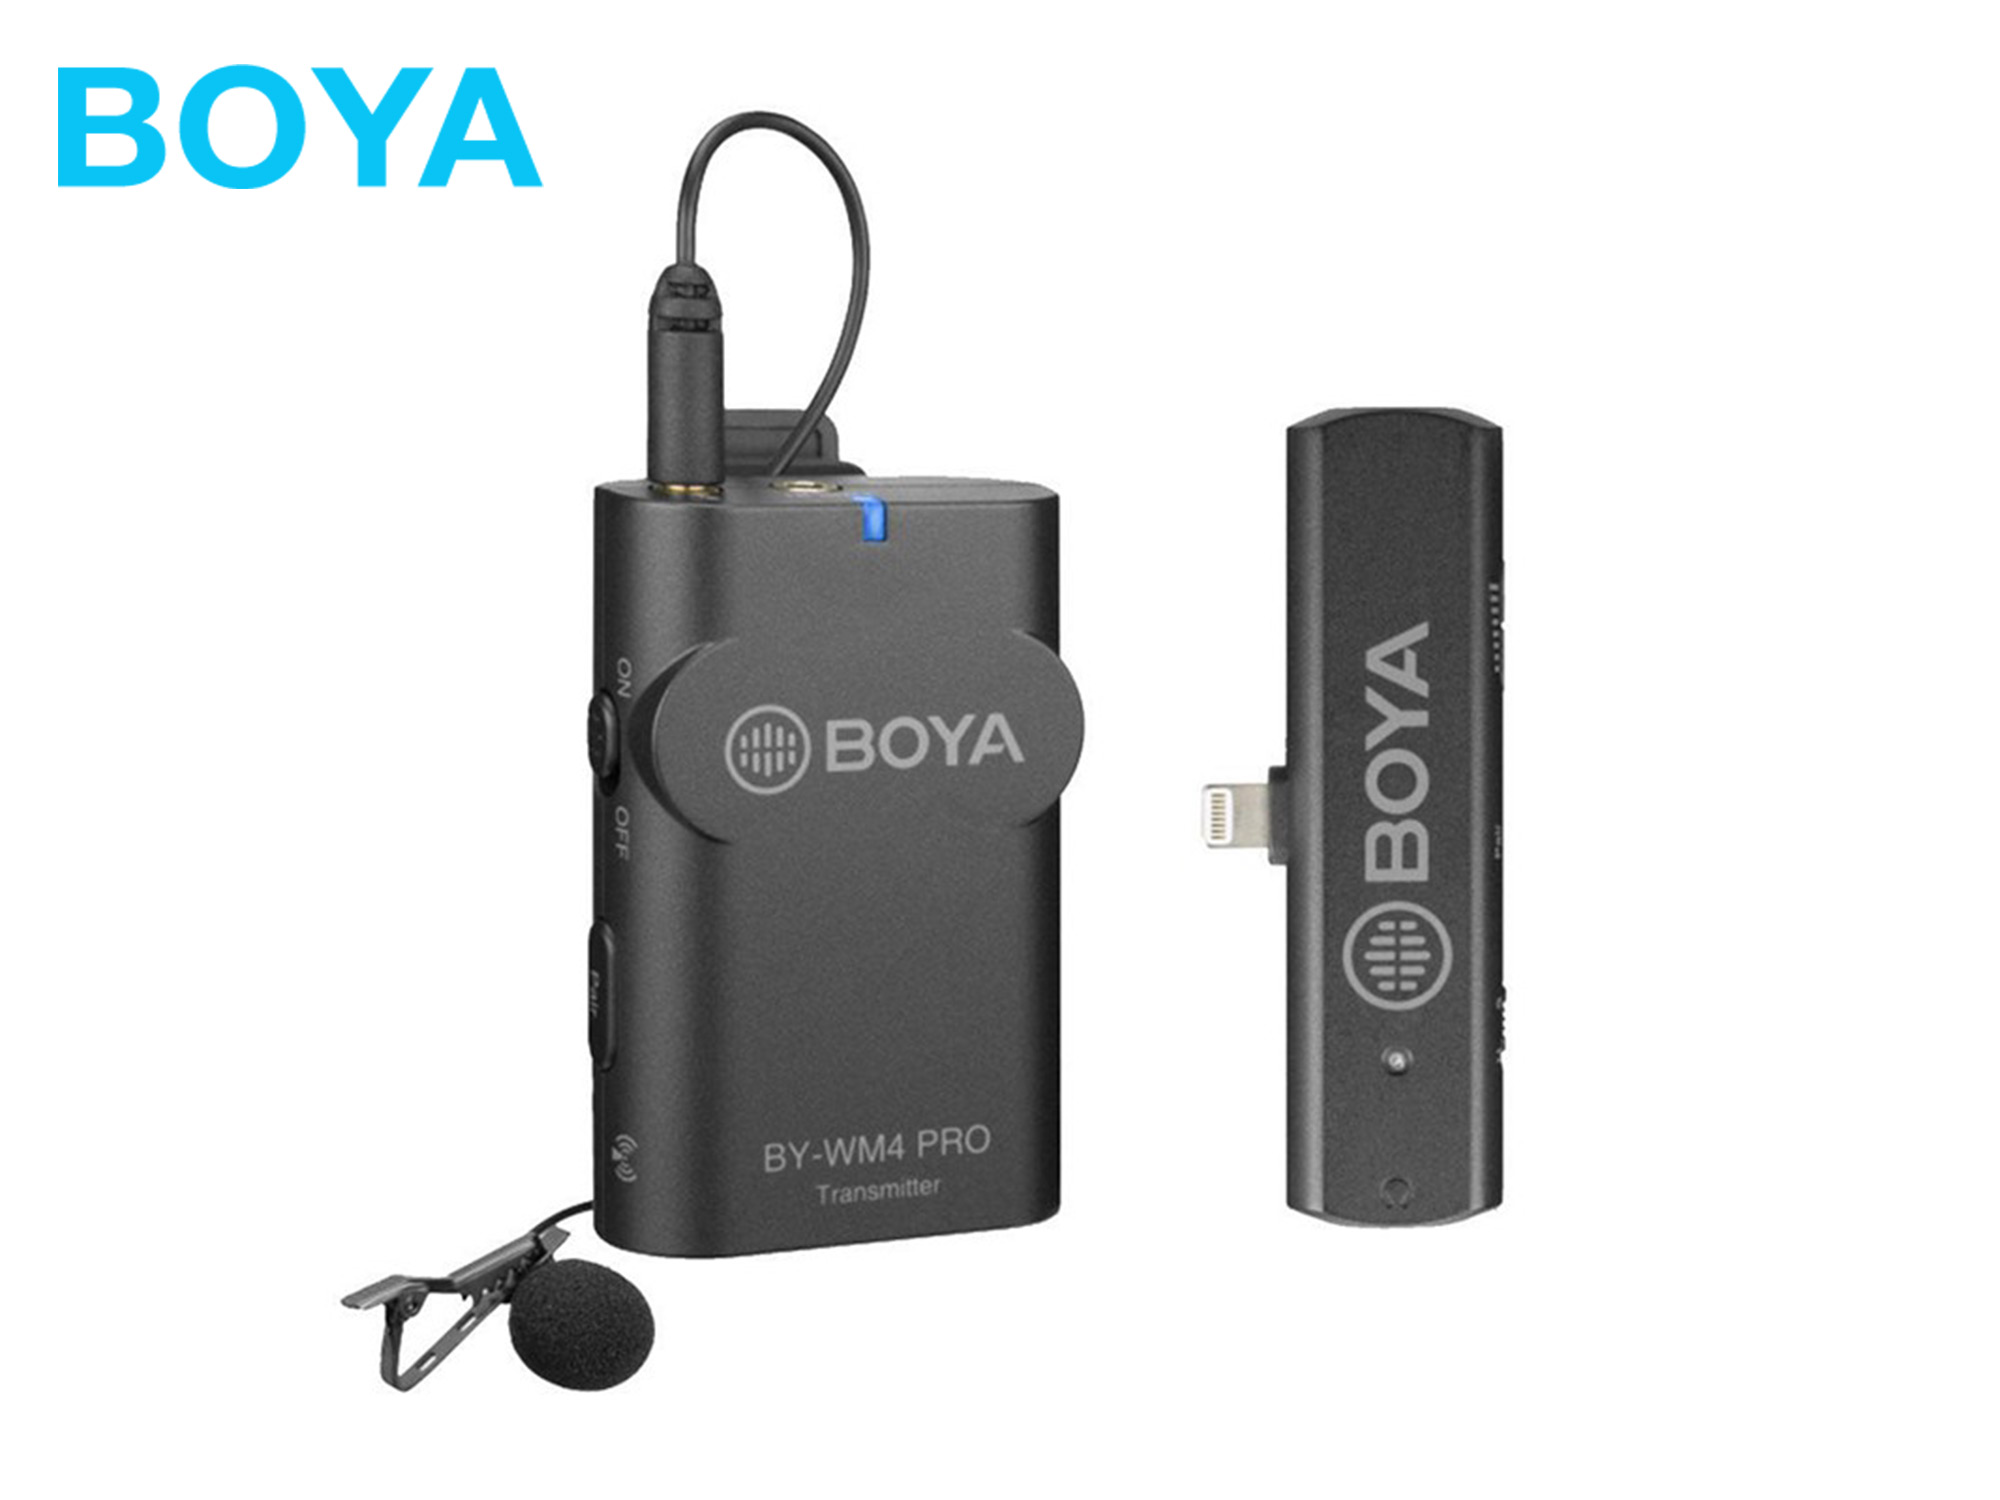 Boya BY-WM4 PRO K3 2.4 GHz Wireless Microphone System For iOS devices